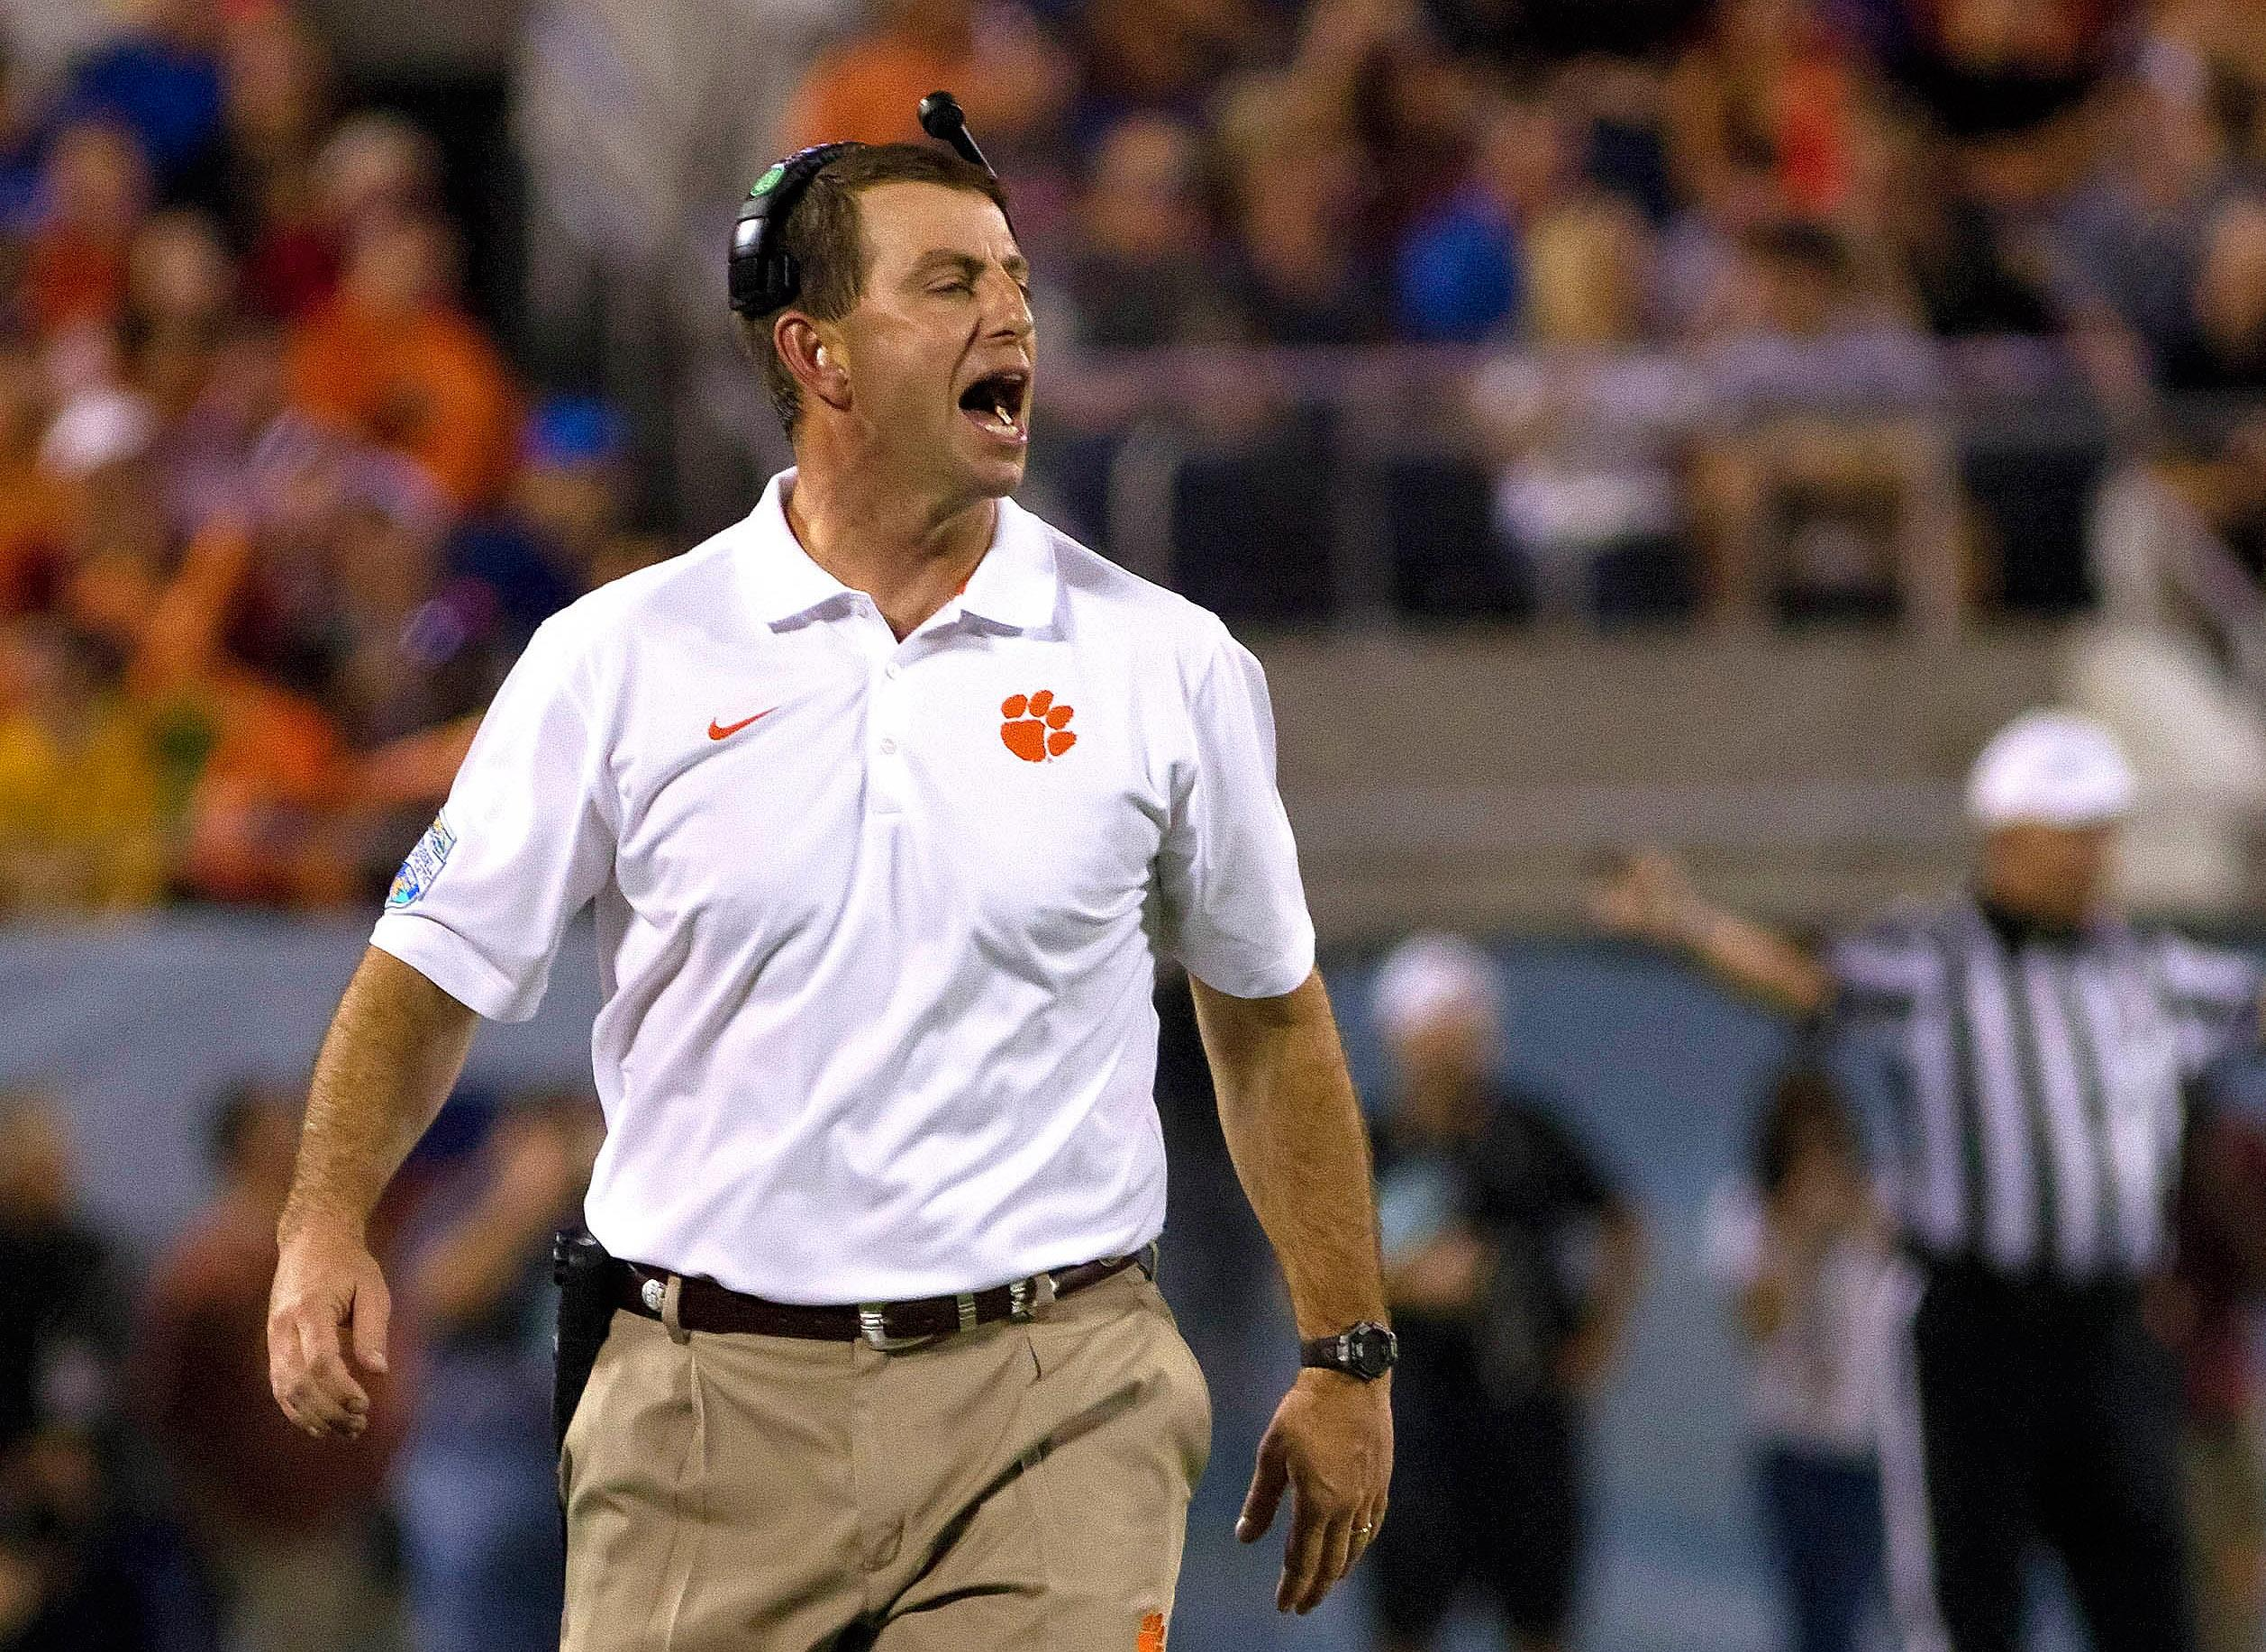 Clemson coach Dabo Swinney loves his moped anonymity